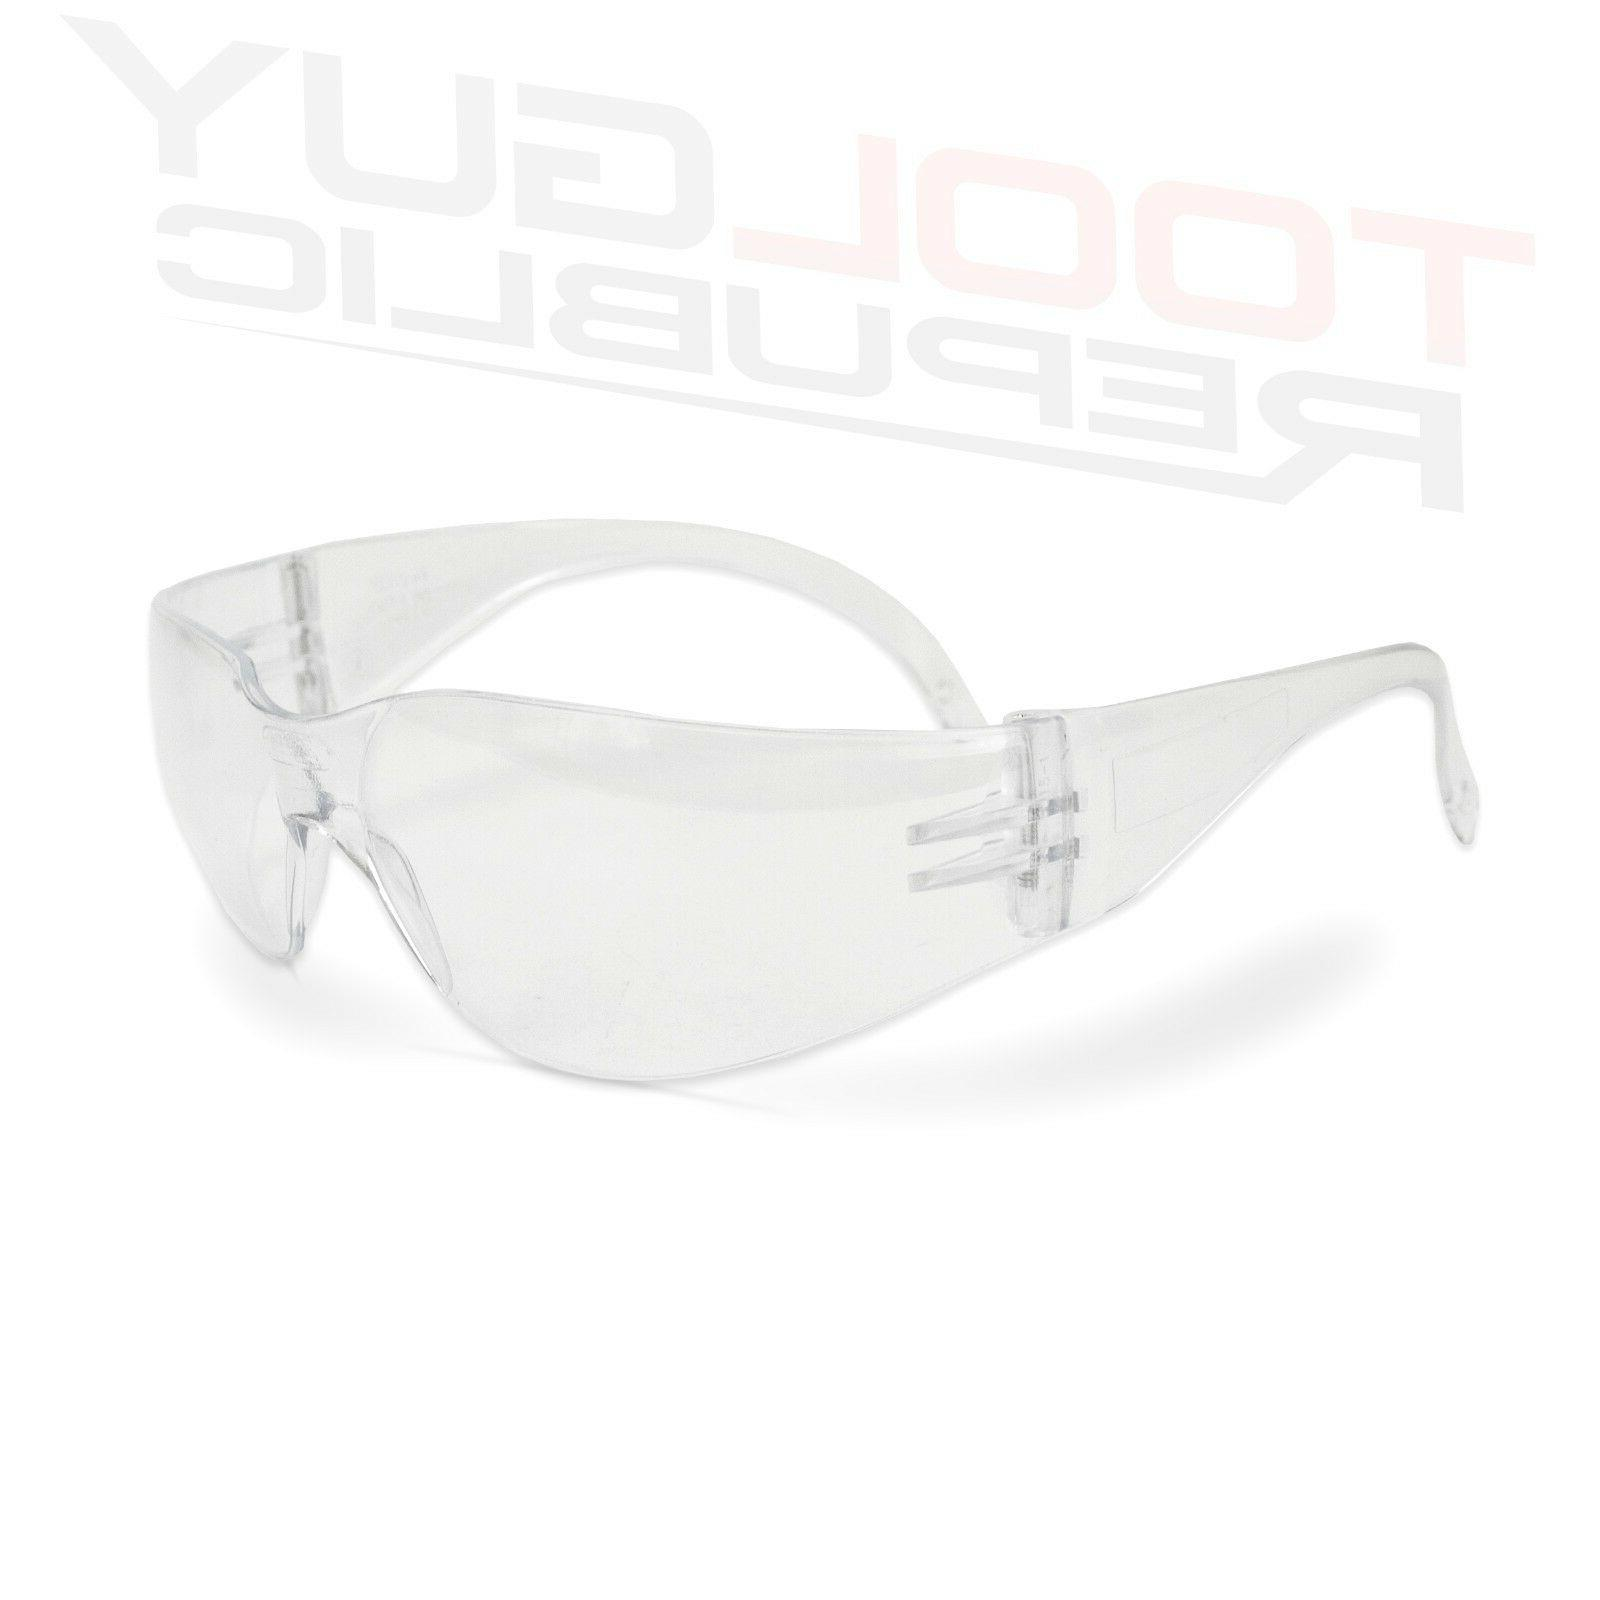 Clear Safety Glasses - Size - ANSI COMPLIANT